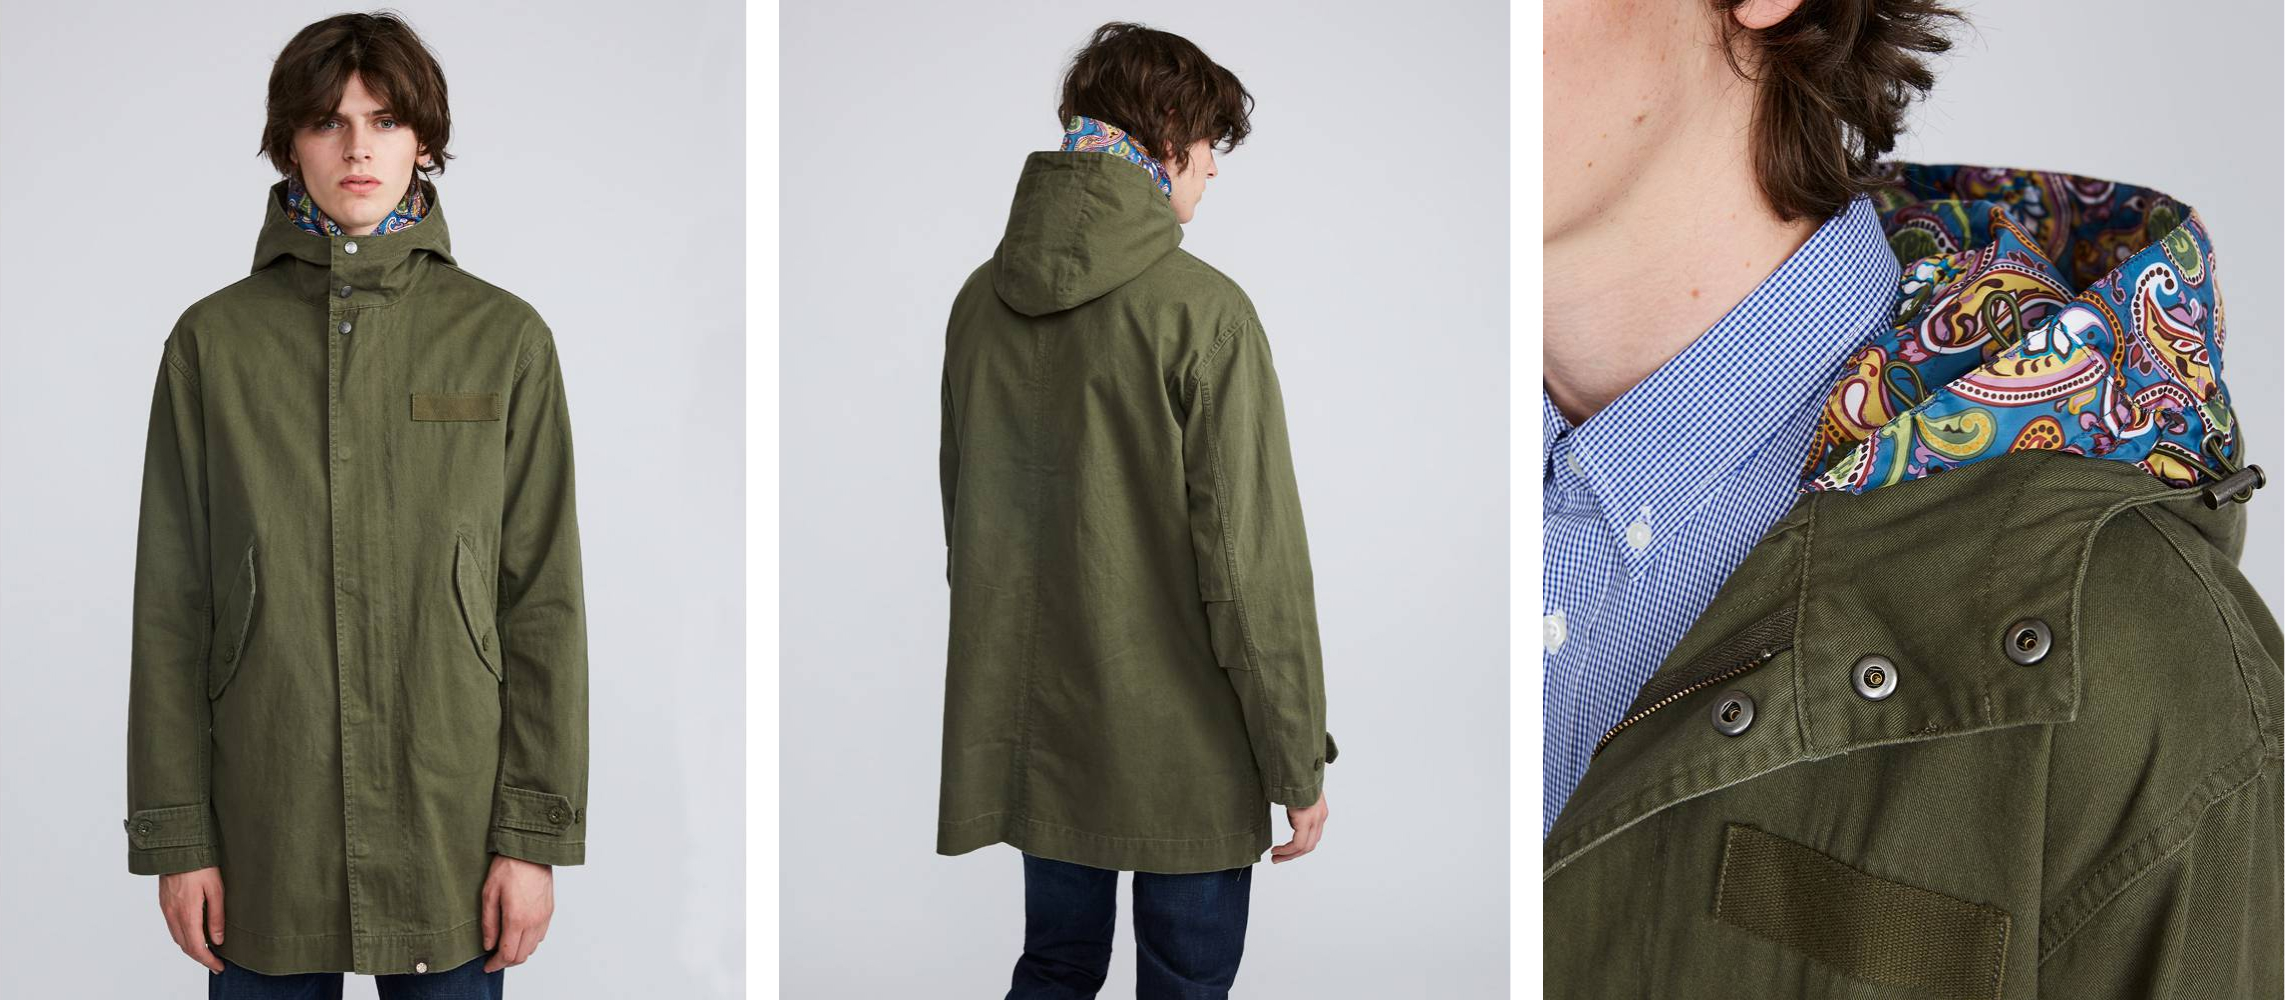 https://www.prettygreen.com/products/mens-seam-sealed-technical-parka-2635/?color=green&size=xs&utm_medium=Organic&utm_source=Newsletter&utm_campaign=Outerwear